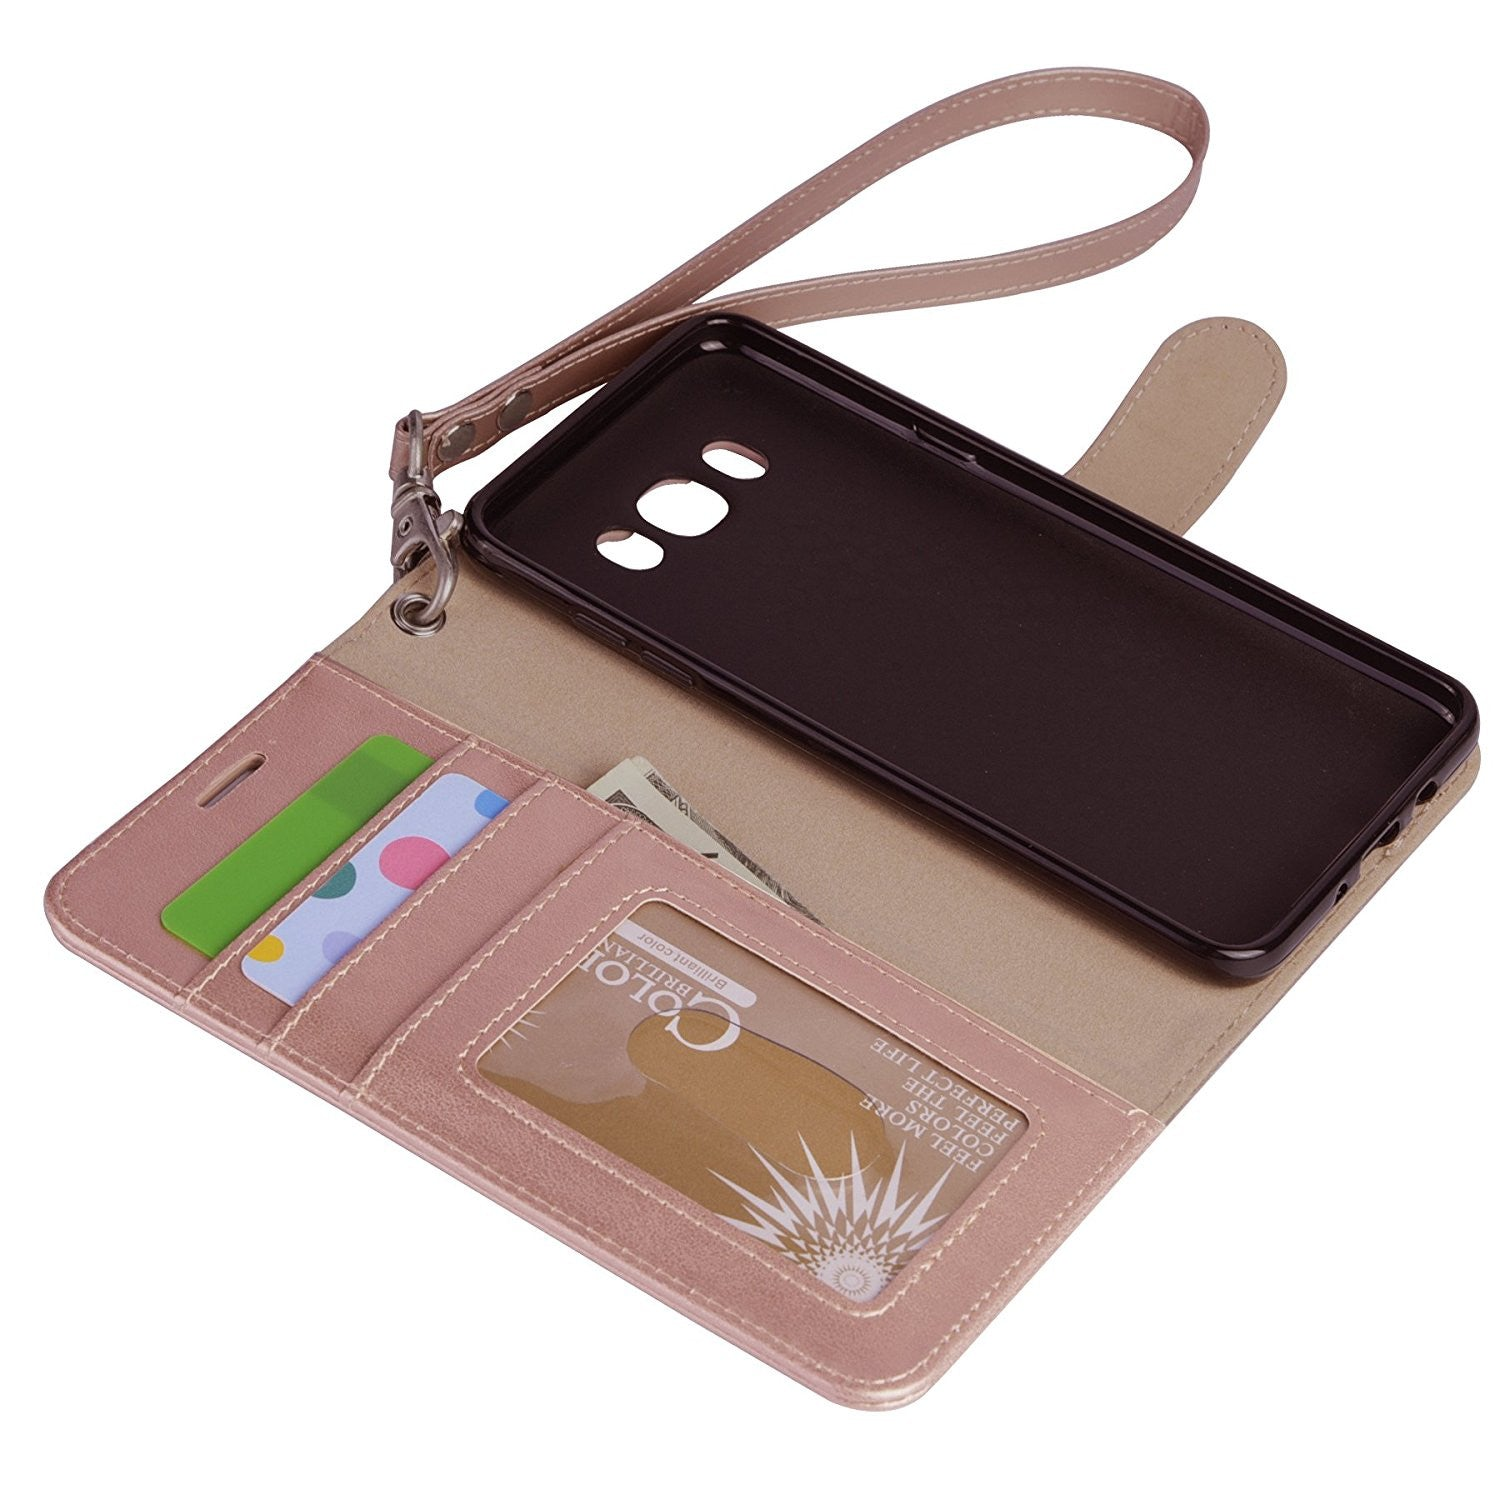 Galaxy J7 wallet Case with Kickstand and Flip cover, Rosegold